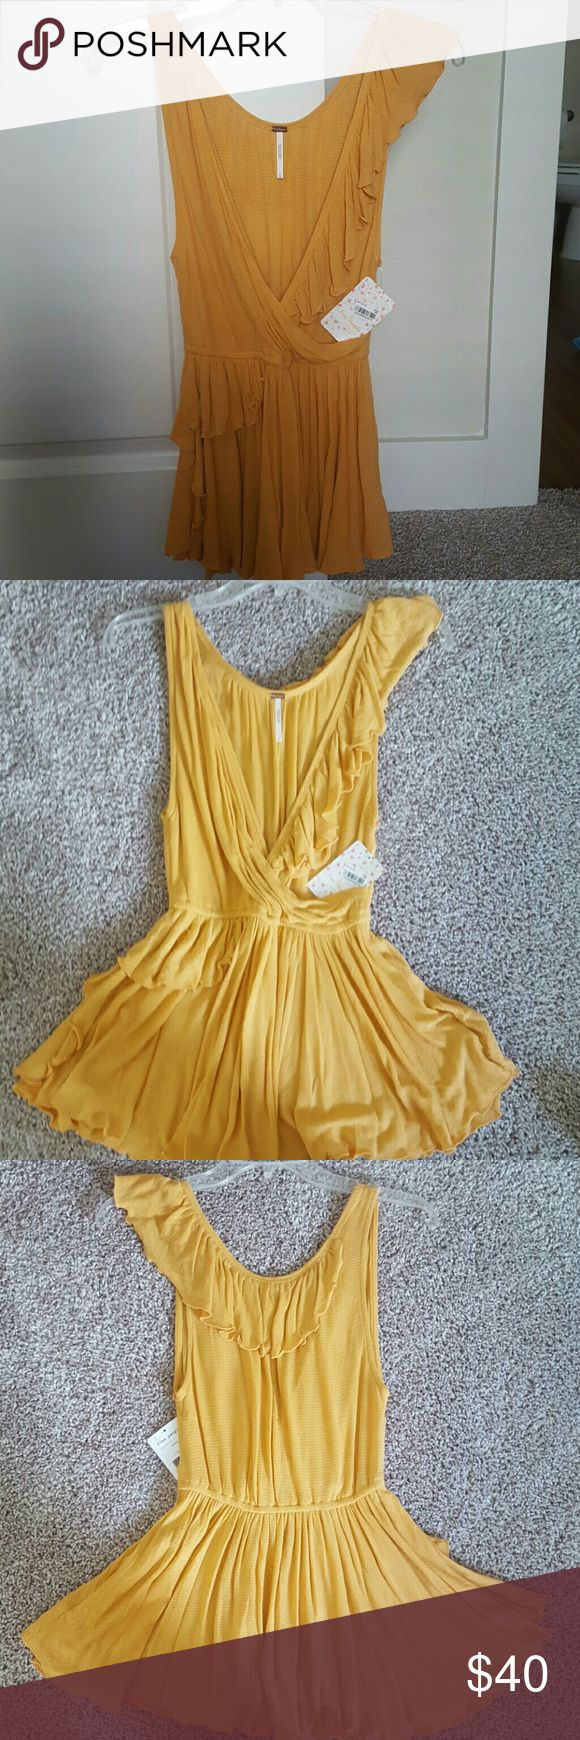 Free People Mango Ruffled Shirt Adorable and brand new! zero flaws. Great for Easter Sunday or a first date! Wonderful for an audition too! Pair with skinny keans, leggings or a short skirt! Free People Tops